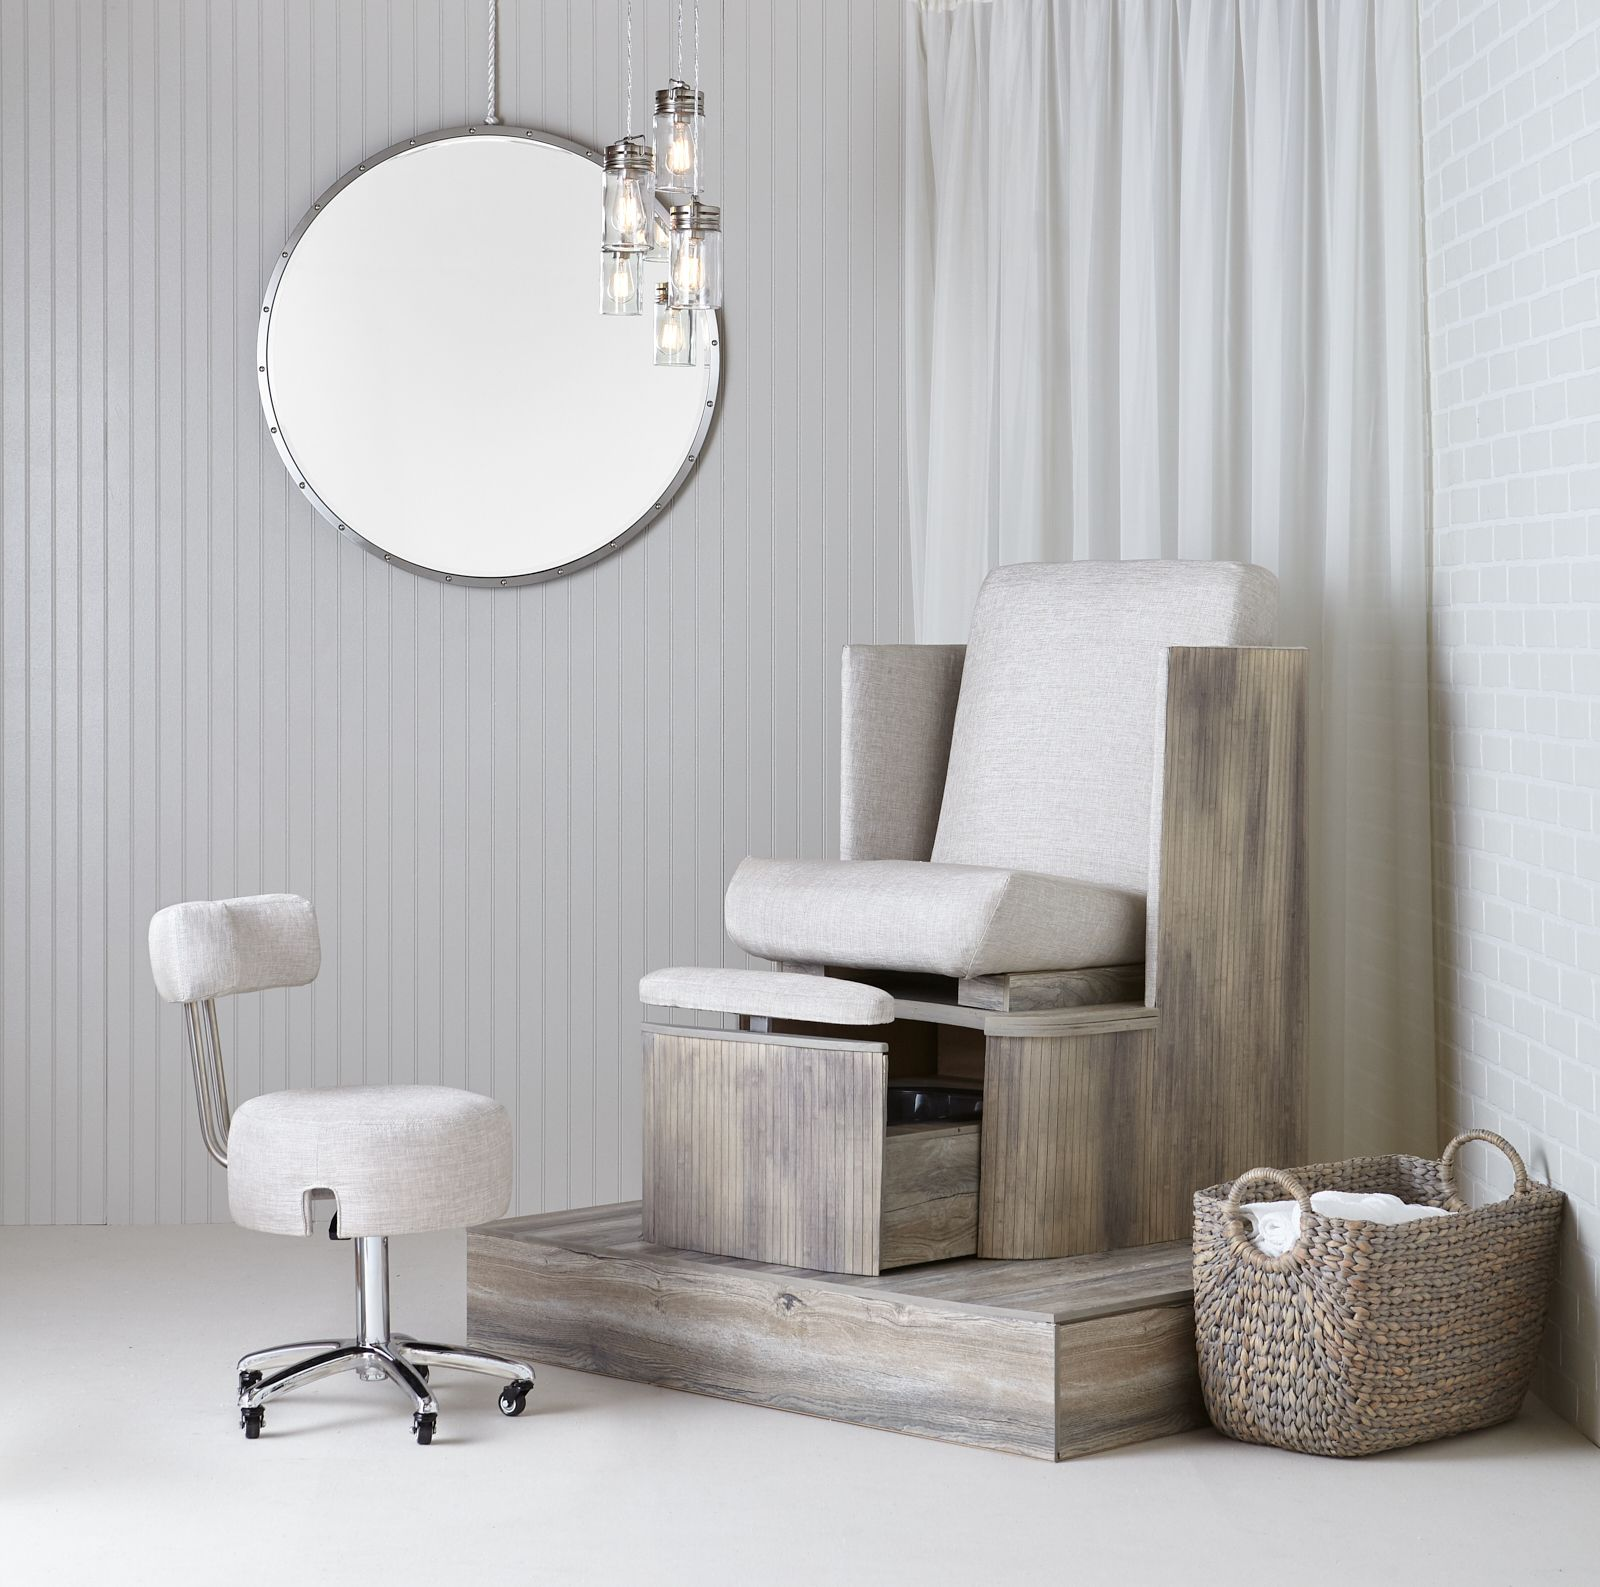 The Belava Dorset Pedicure Spa Chair